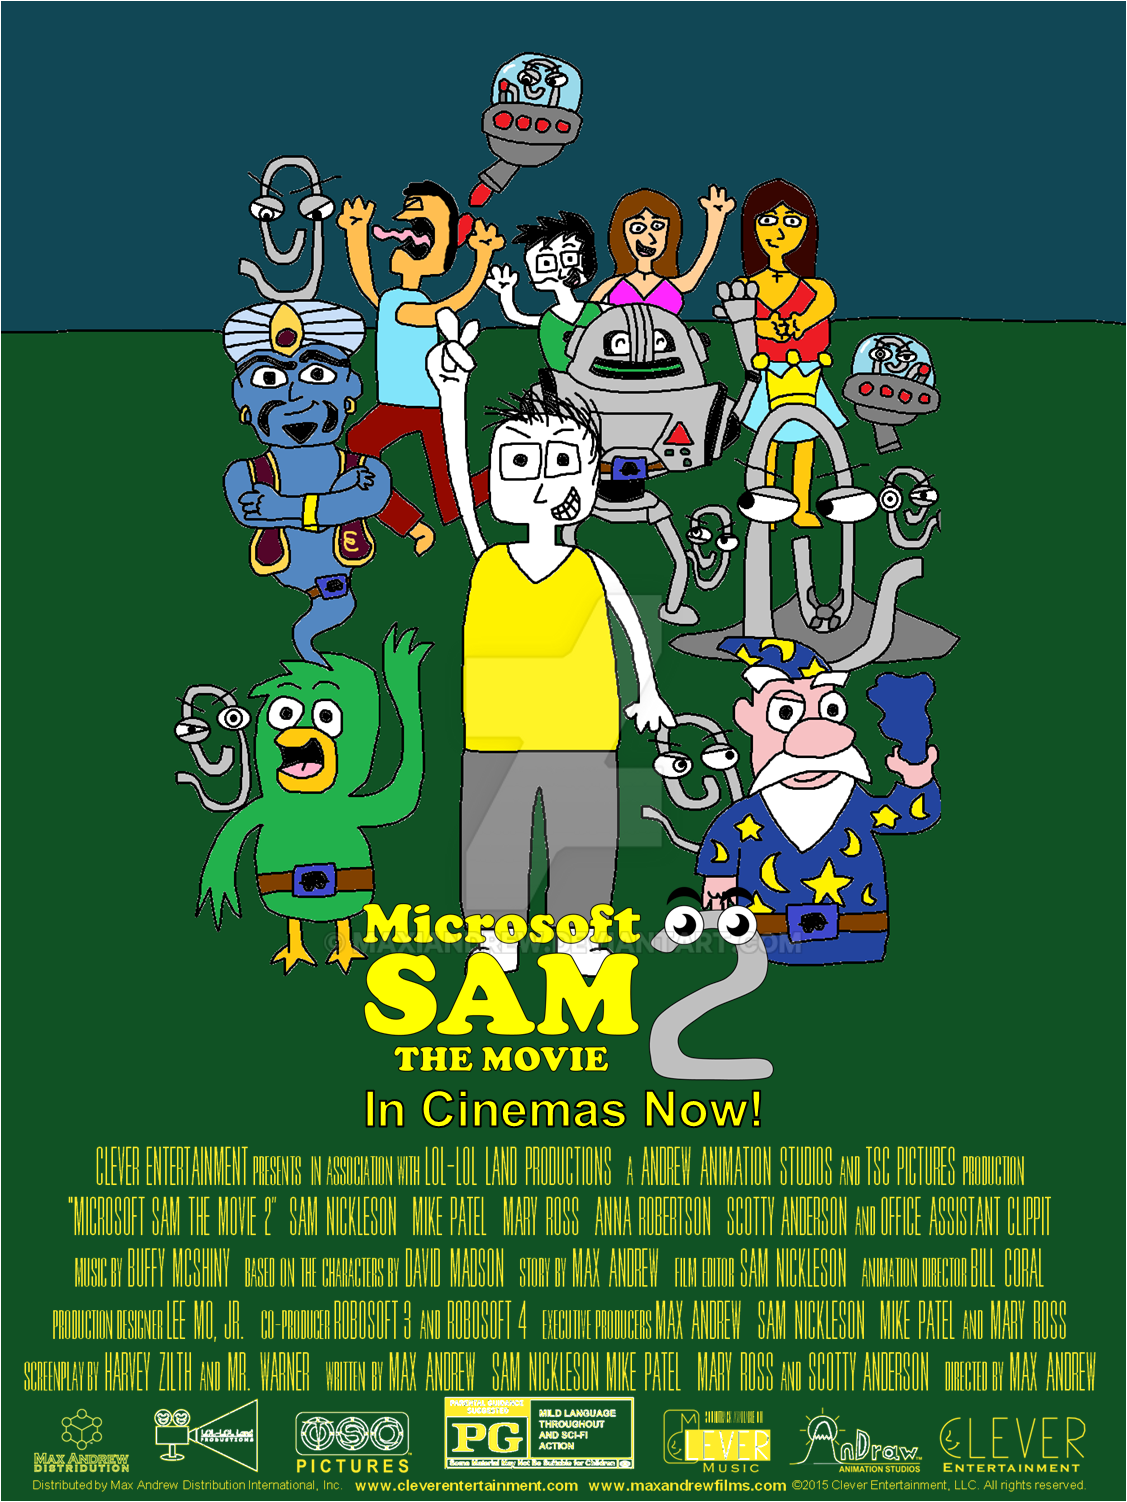 microsoft sam the movie 2 movie poster 3 by maxiandrew on deviantart